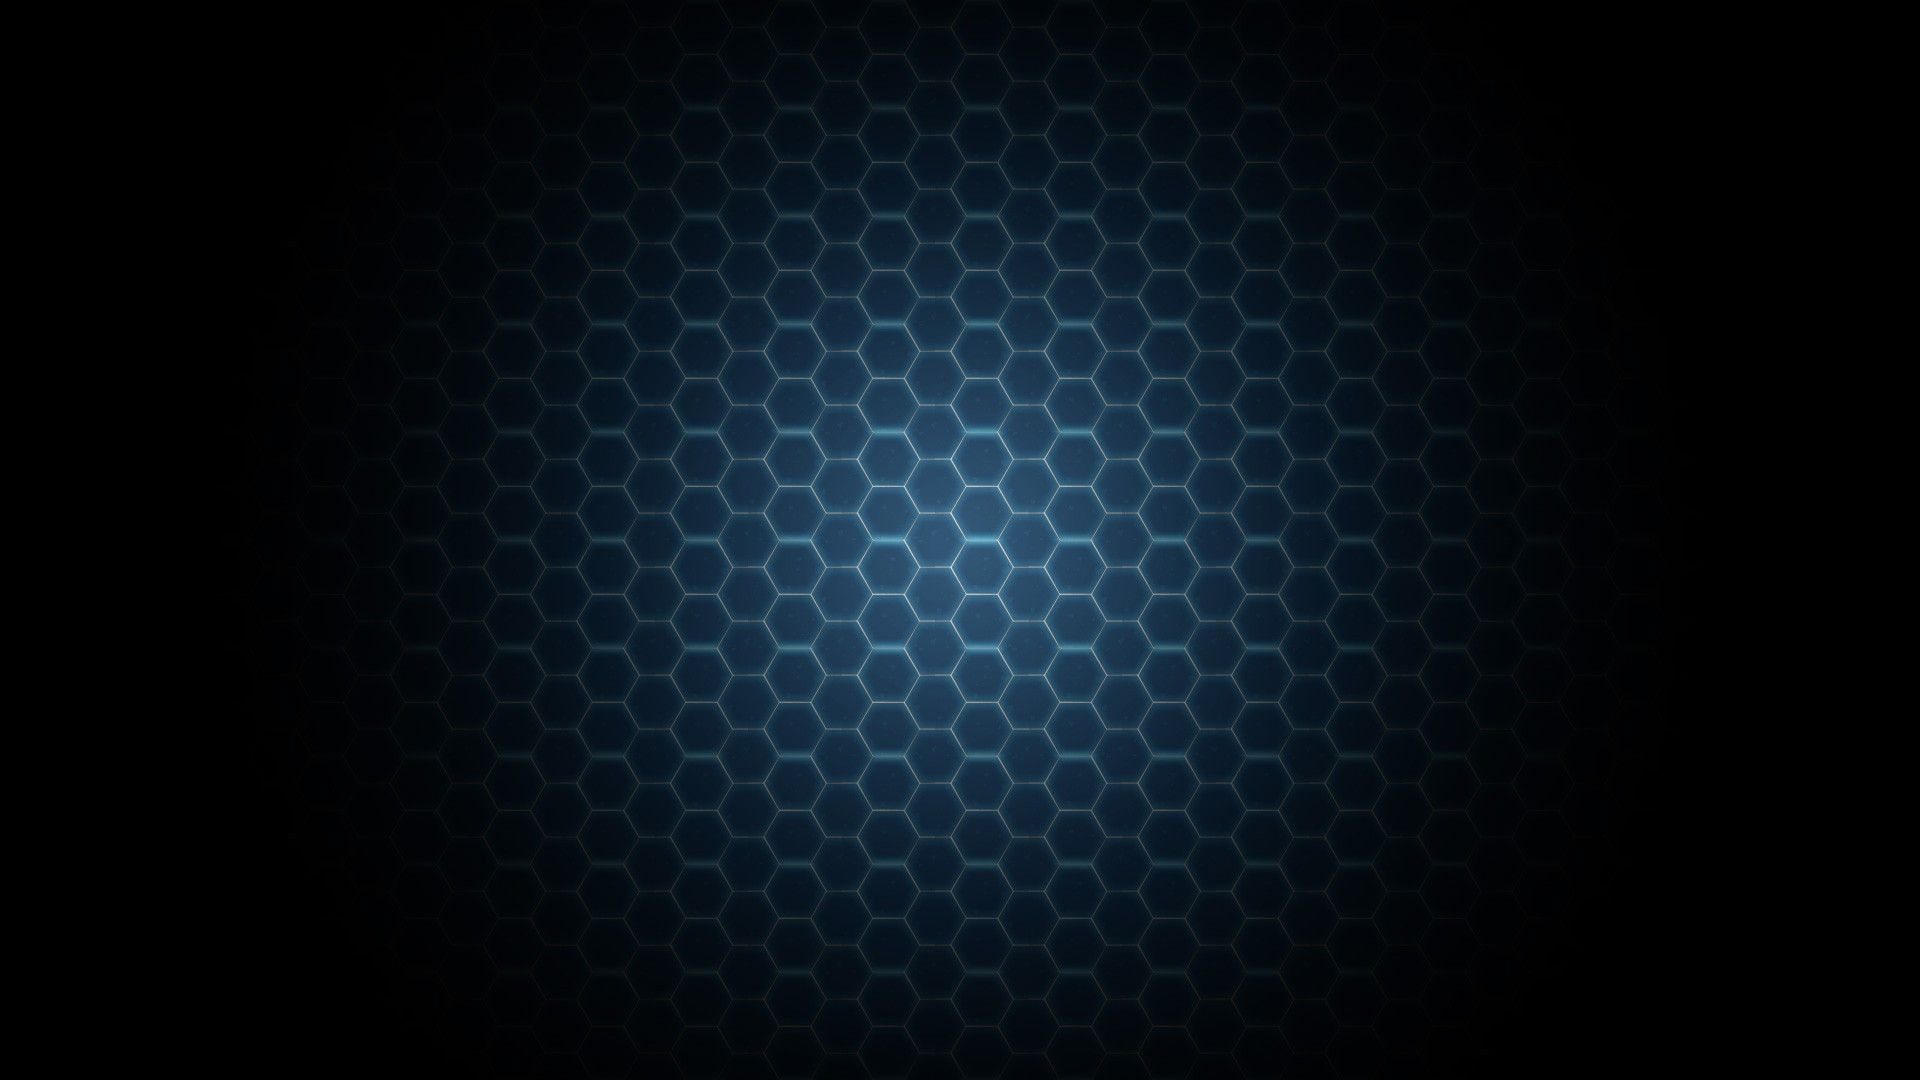 blue and black wallpapers | hd wallpapers | pinterest | black